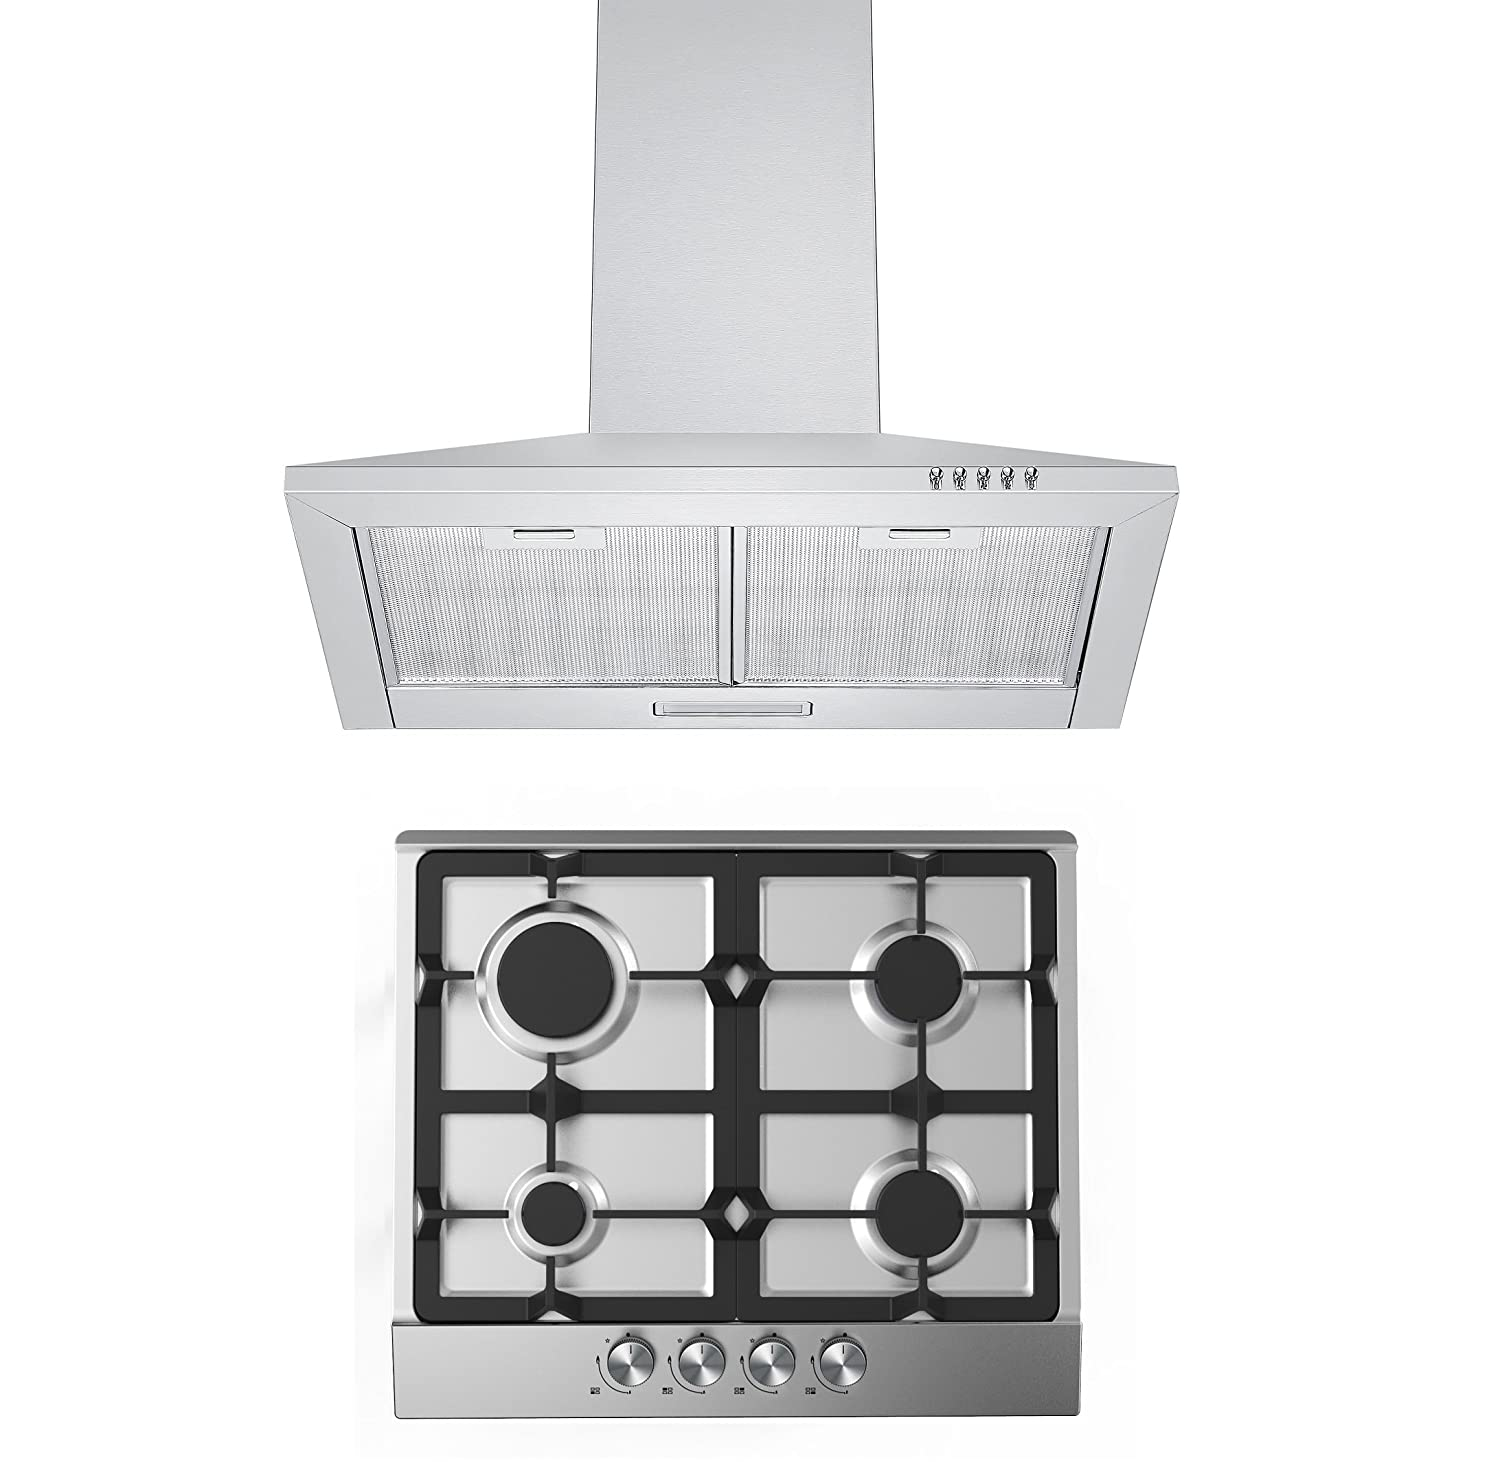 Gas Hob & Hood Pack | Cookology GH605SS Gas Hob & 60cm Stainless Steel Chimney Cooker Hood Pack GH605SS CH600SS